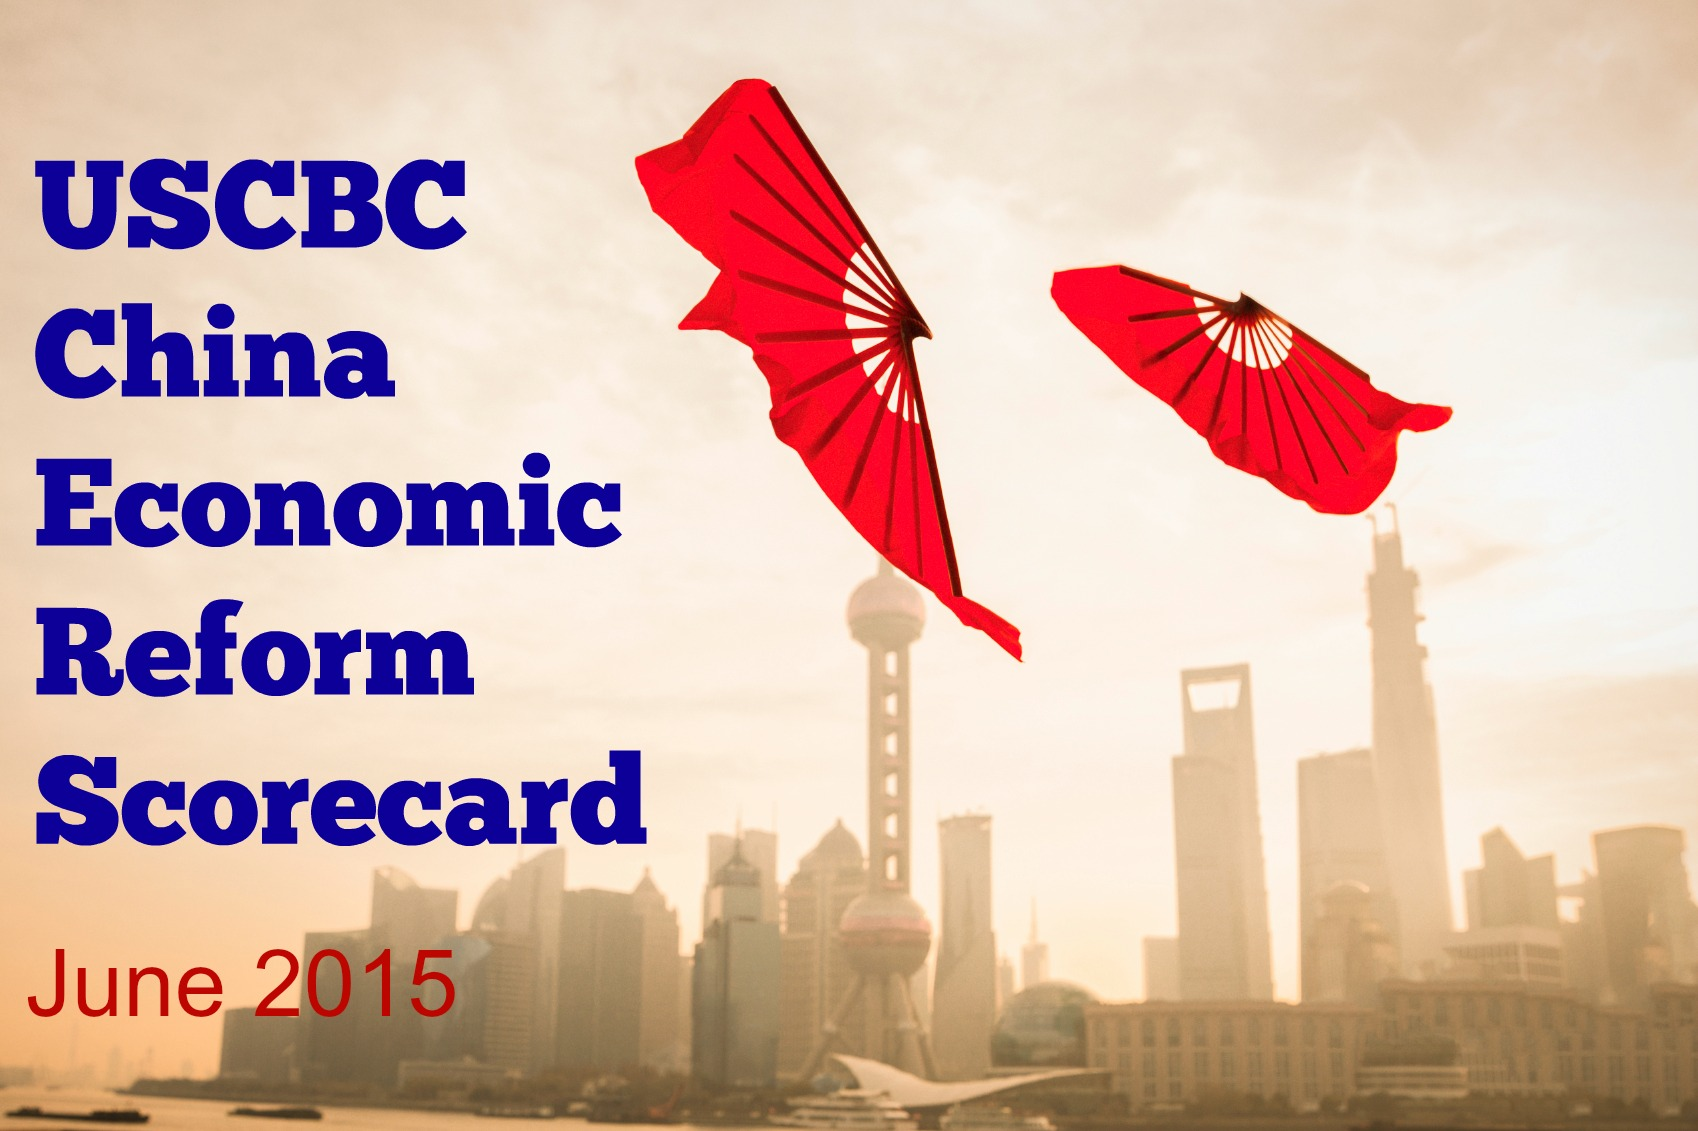 the economic reform of china emerging Of reforms, we nevertheless believe that the 13th fyp has the 1 china's economic transformation is spurring the creation of this provides an opportunity for fdi into china's advanced and emerging industries.